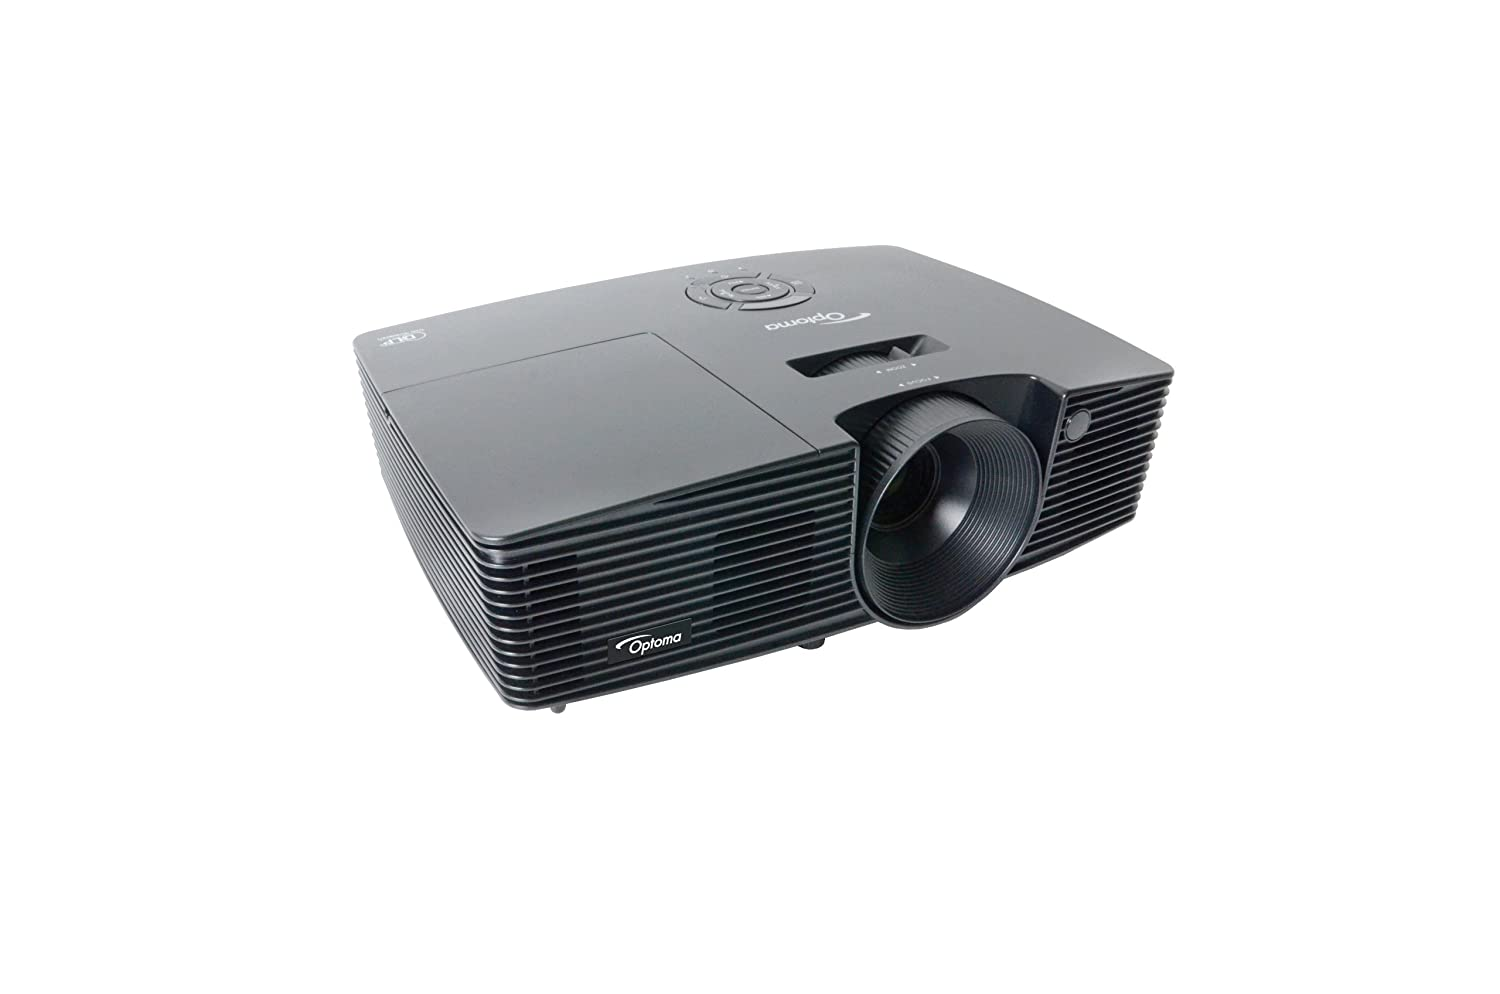 Optoma S310E - Videoproyector (3200 lúmenes, 800 x 600p, 120 Hz, 20000:1), color negro